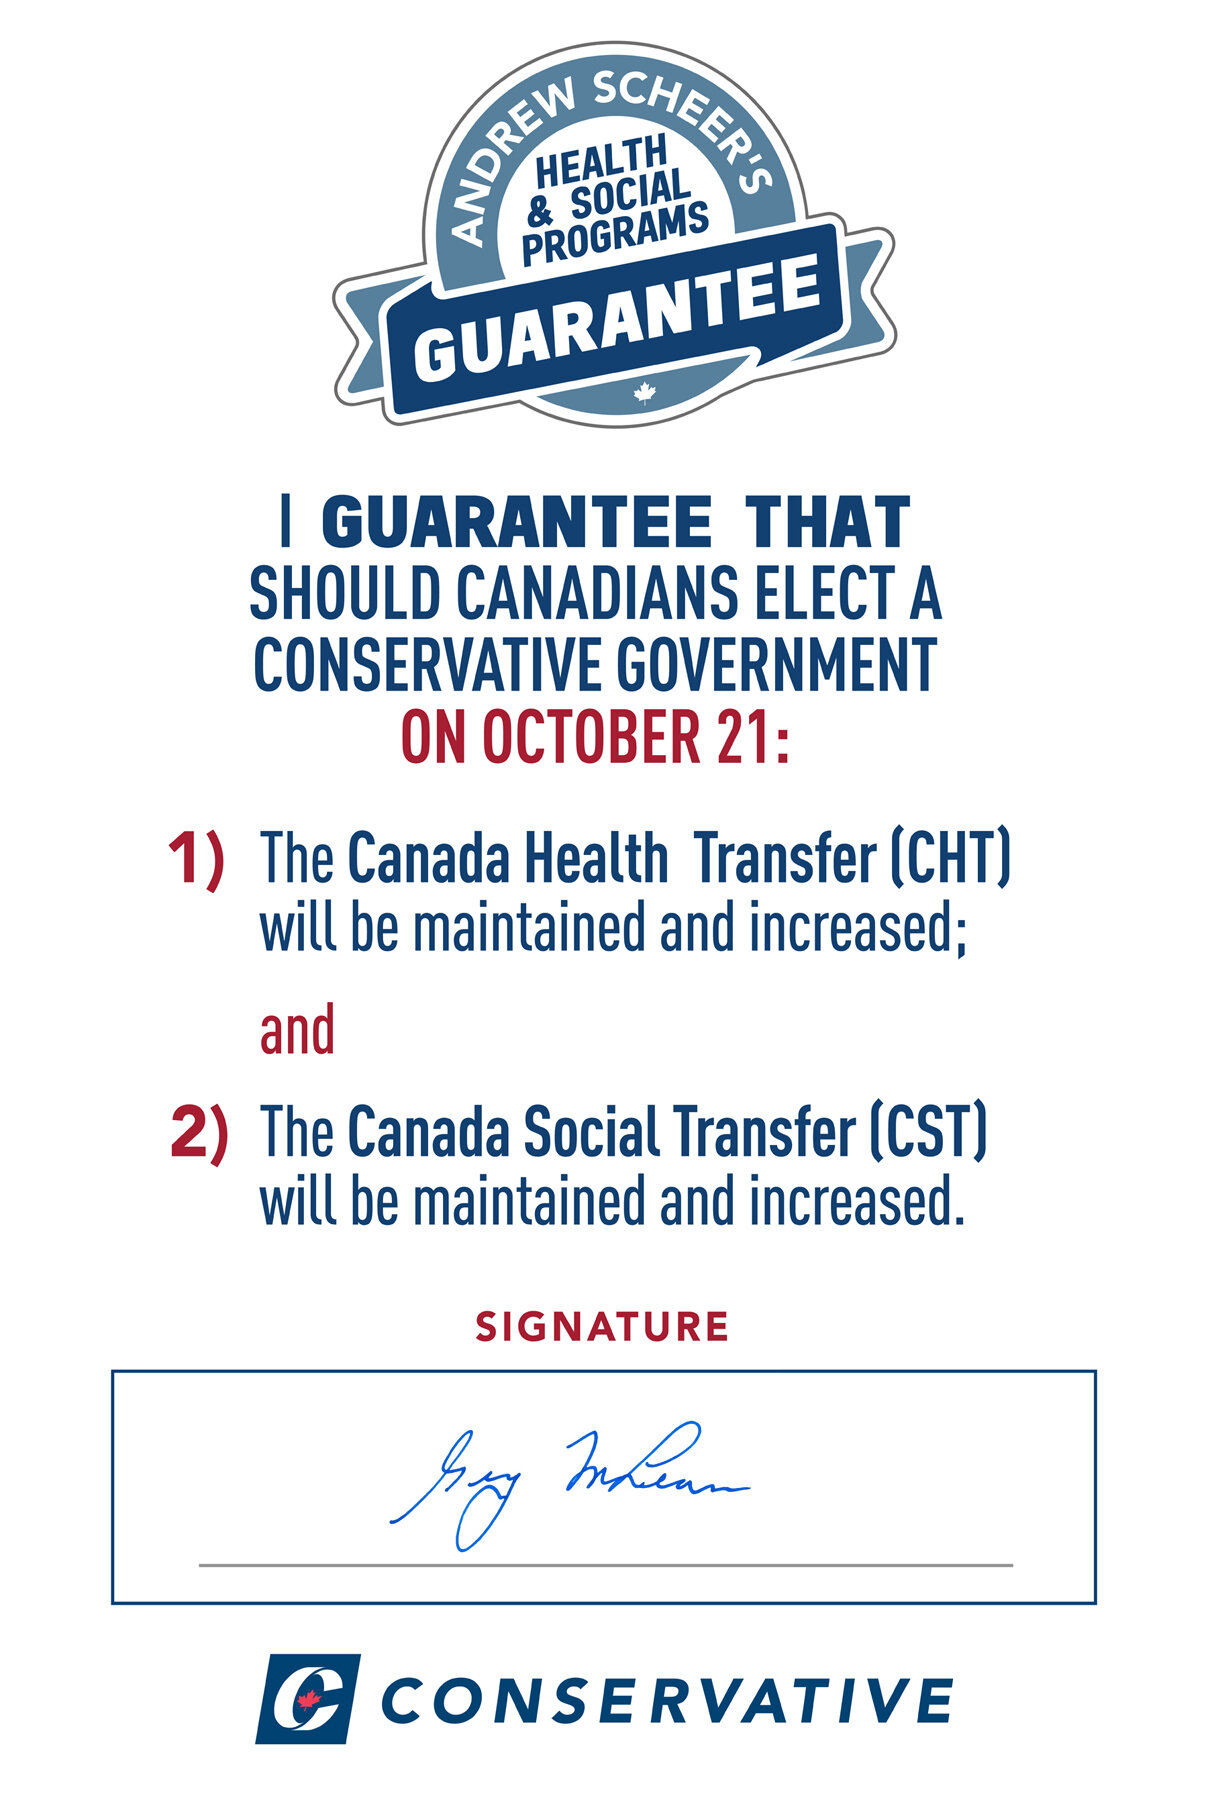 3% Increase - The Conservative Party has announced a Health and Social Program Guarantee: a commitment to maintain and increase the Canada Health Transfer (CHT) and the Canada Social Transfer (CST) by at least 3% per year, as is currently mandated in legislation.In 2019-2020, the two transfers are providing $55 billion to provinces and territories.It is critical for provincial/territorial planning for the delivery of health and social services to know how much they will receive in transfer payments from the federal government. This commitment will give them a guarantee of predictable minimum increases each year.It is also critical for Canadians to have confidence that these programs will be there for them when they need them. That's what this guarantee is about.Our opponents will accuse Conservatives of planning to cut spending for health and social services. This guarantee means Canadians can be assured that those opposition attacks are just partisan nonsense.